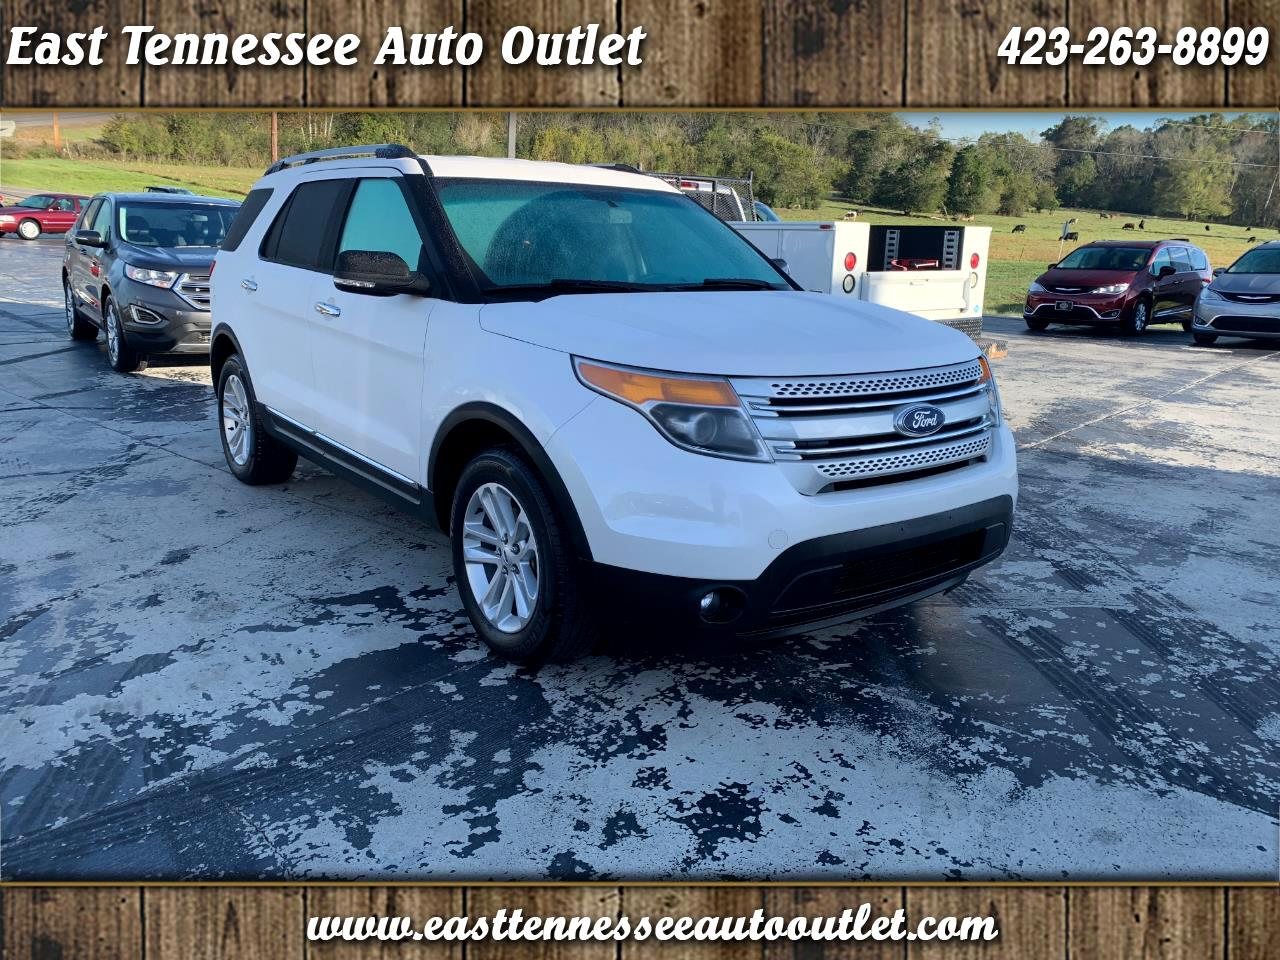 Used 2012 Ford Explorer For Sale In Etowah Tn 37331 East Tennessee Sport